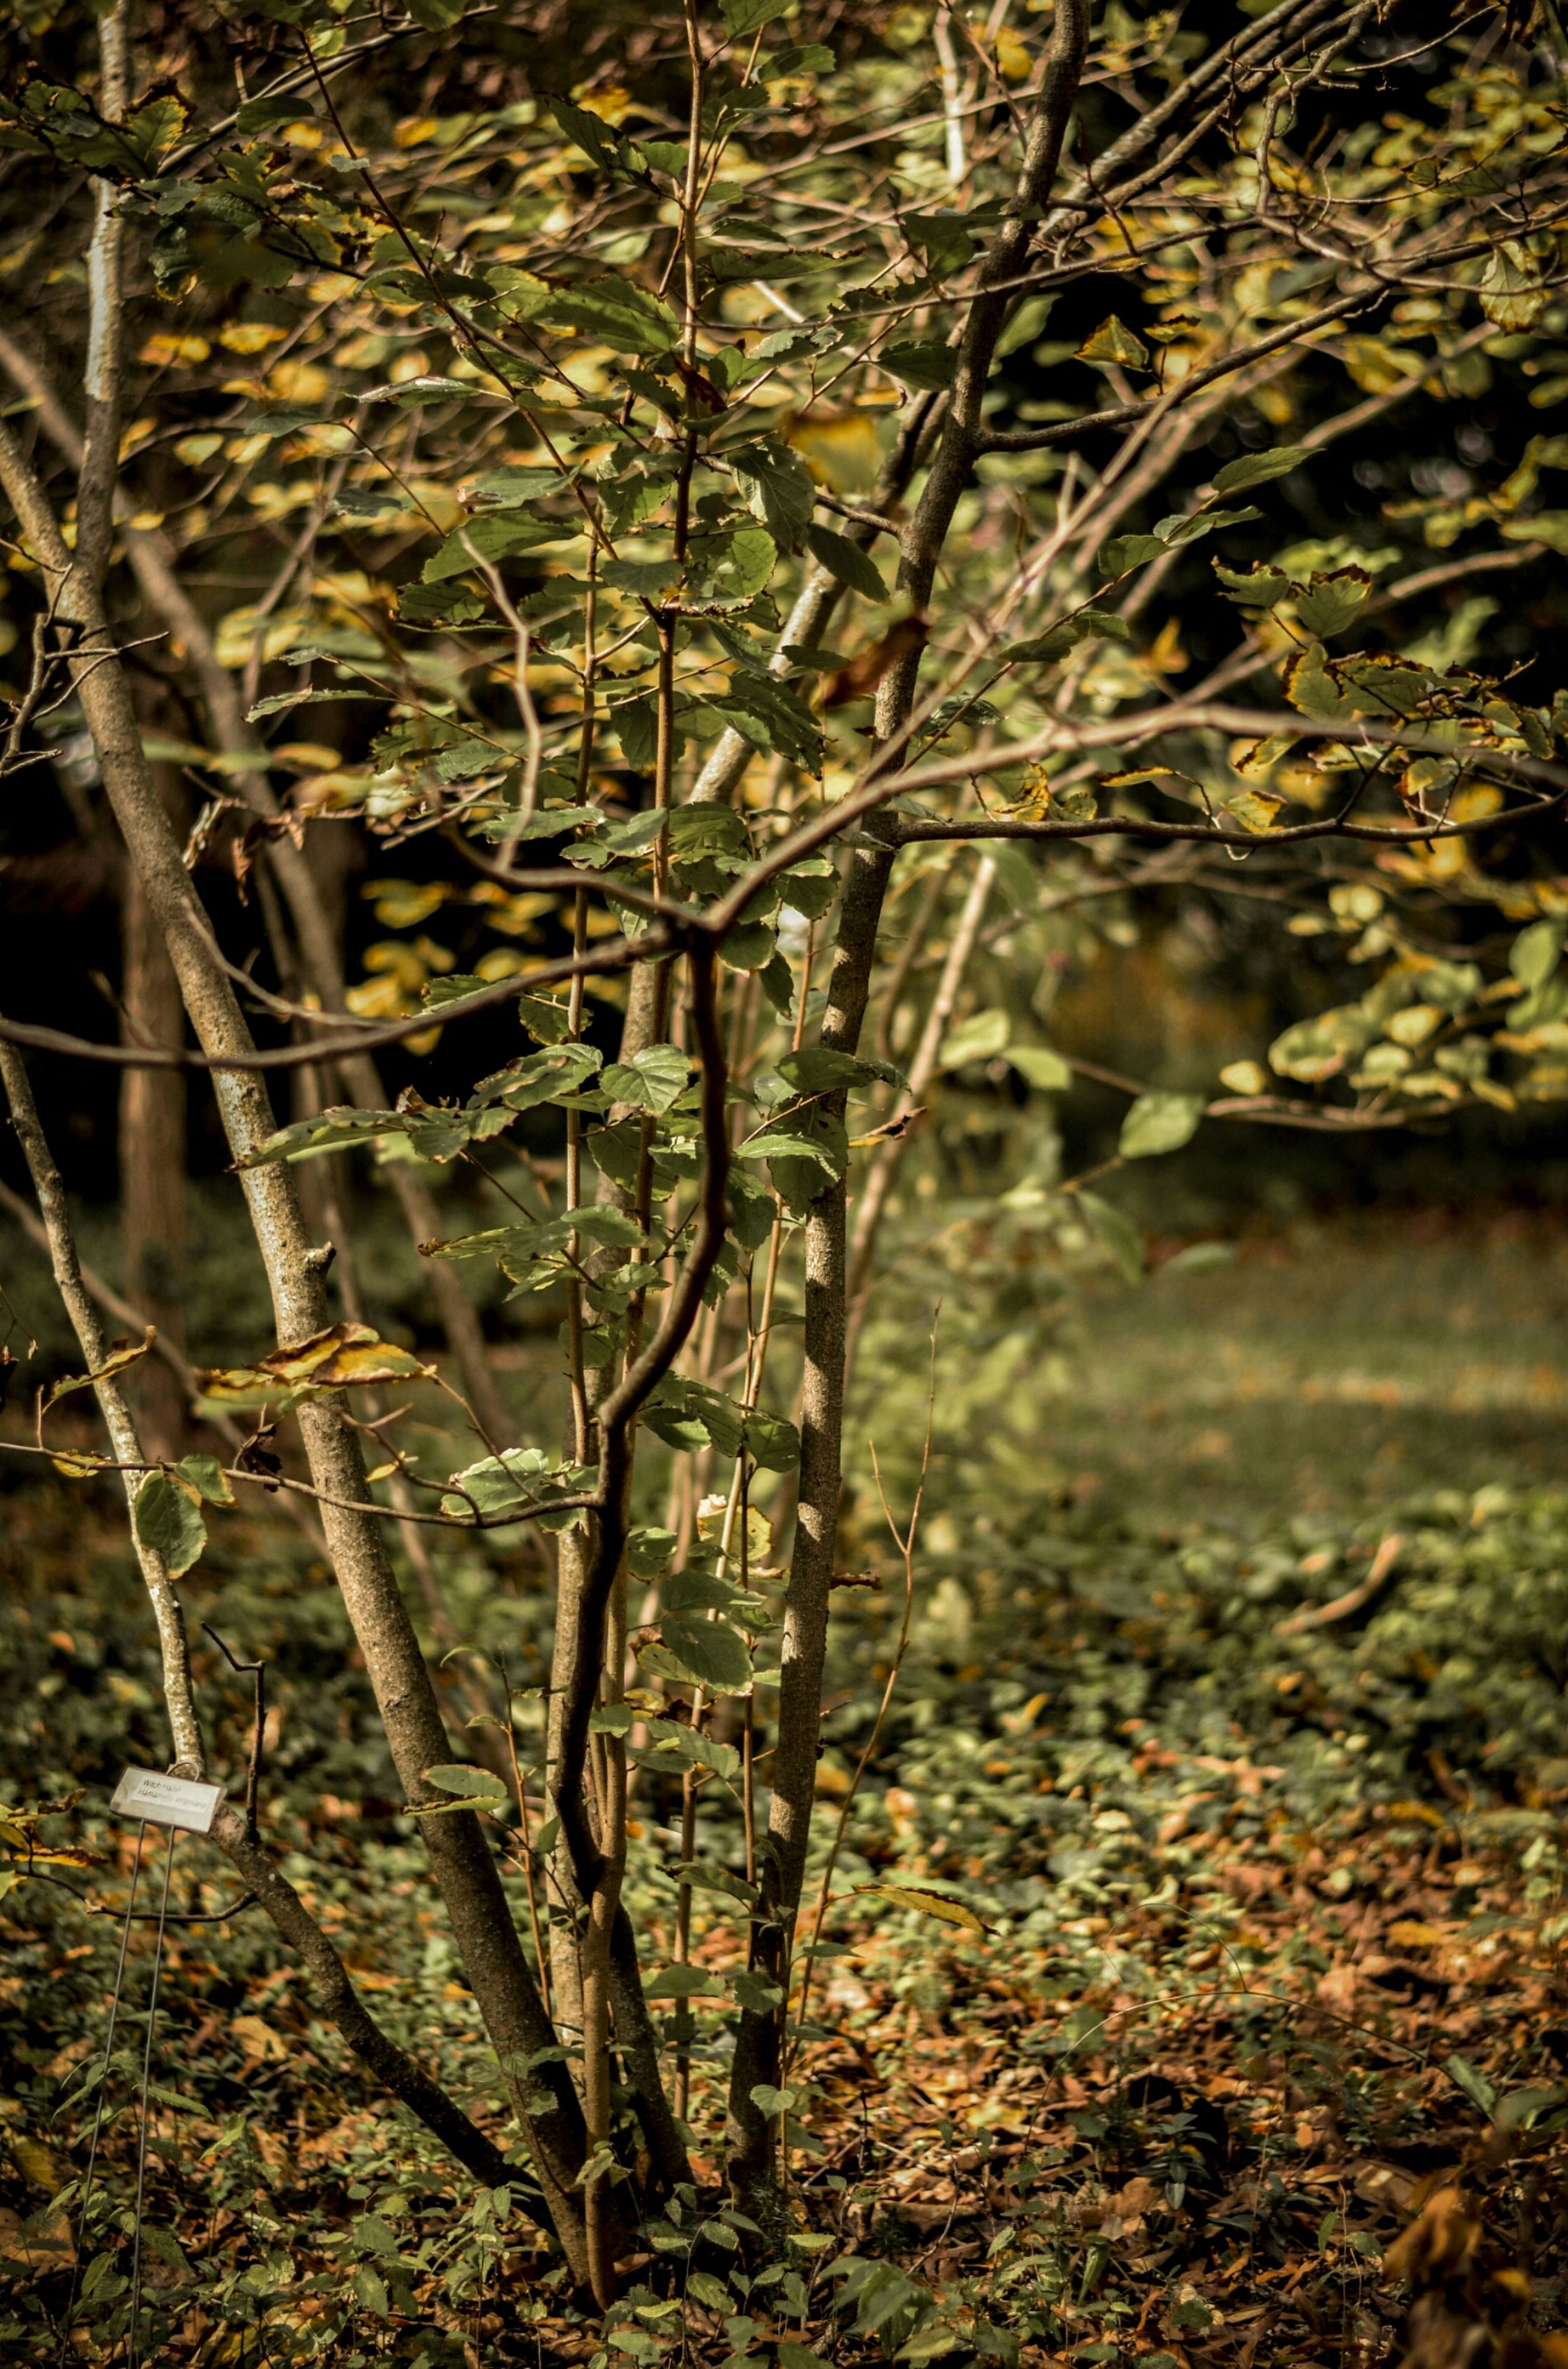 dry, nature, growth, forest, tranquility, grass, plant, leaf, tree trunk, field, tree, high angle view, day, outdoors, no people, branch, beauty in nature, water, twig, autumn